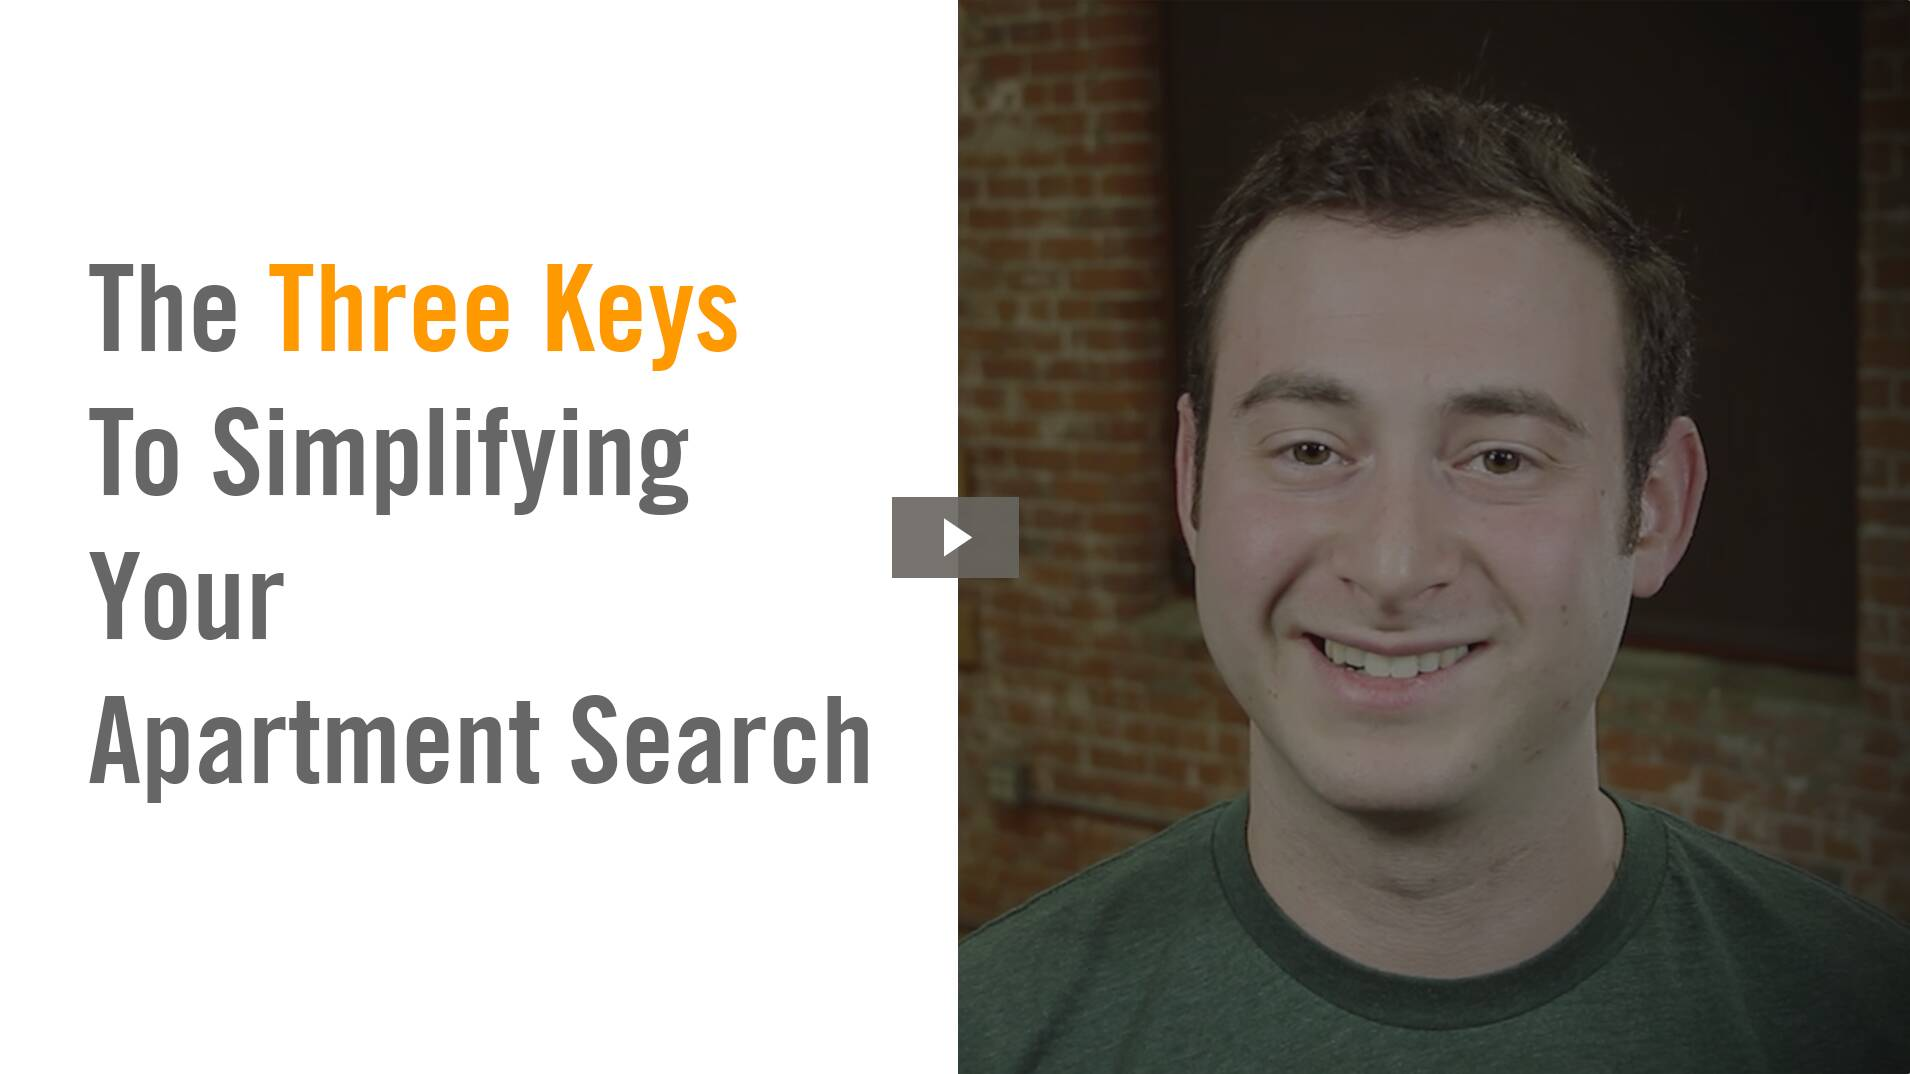 The Three Keys To Simplifying Your Apartment Search